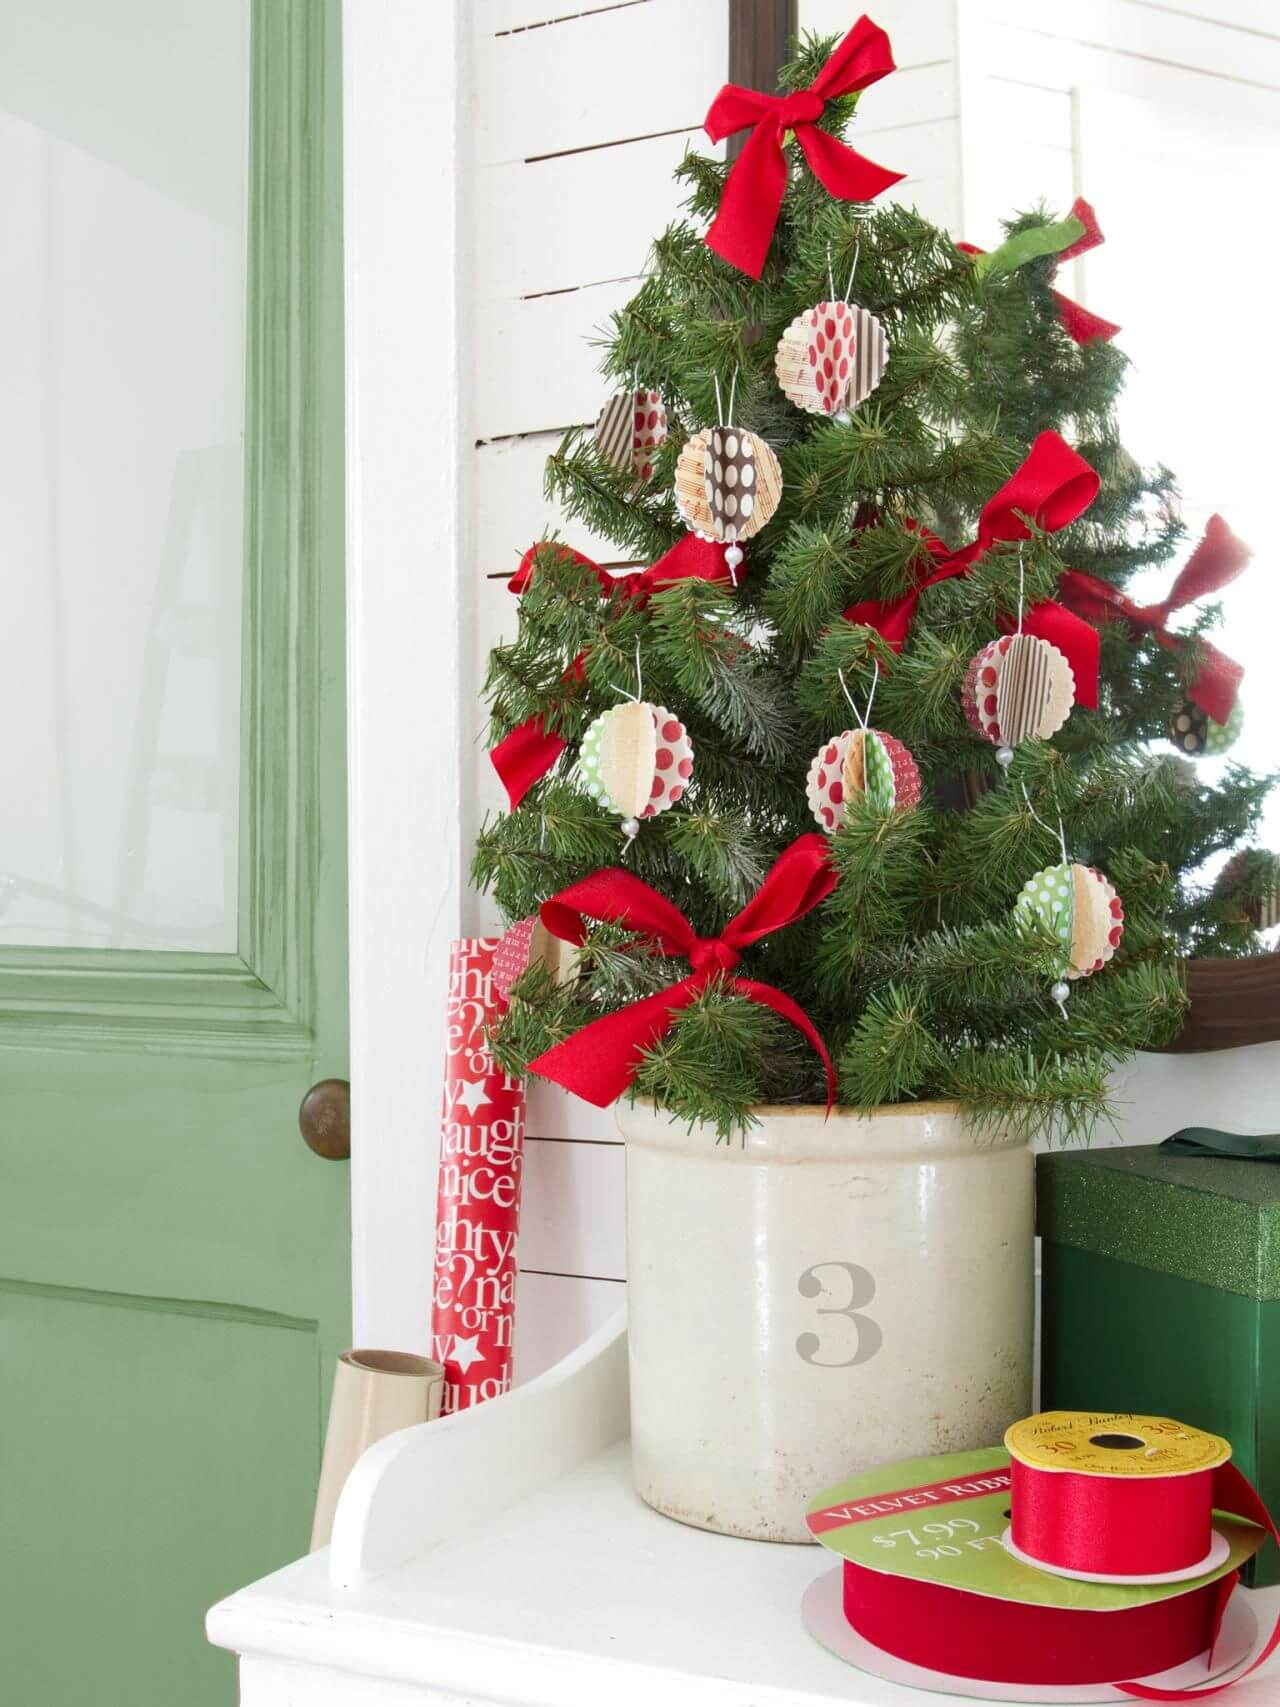 Tabletop DIY Ornament Christmas Tree